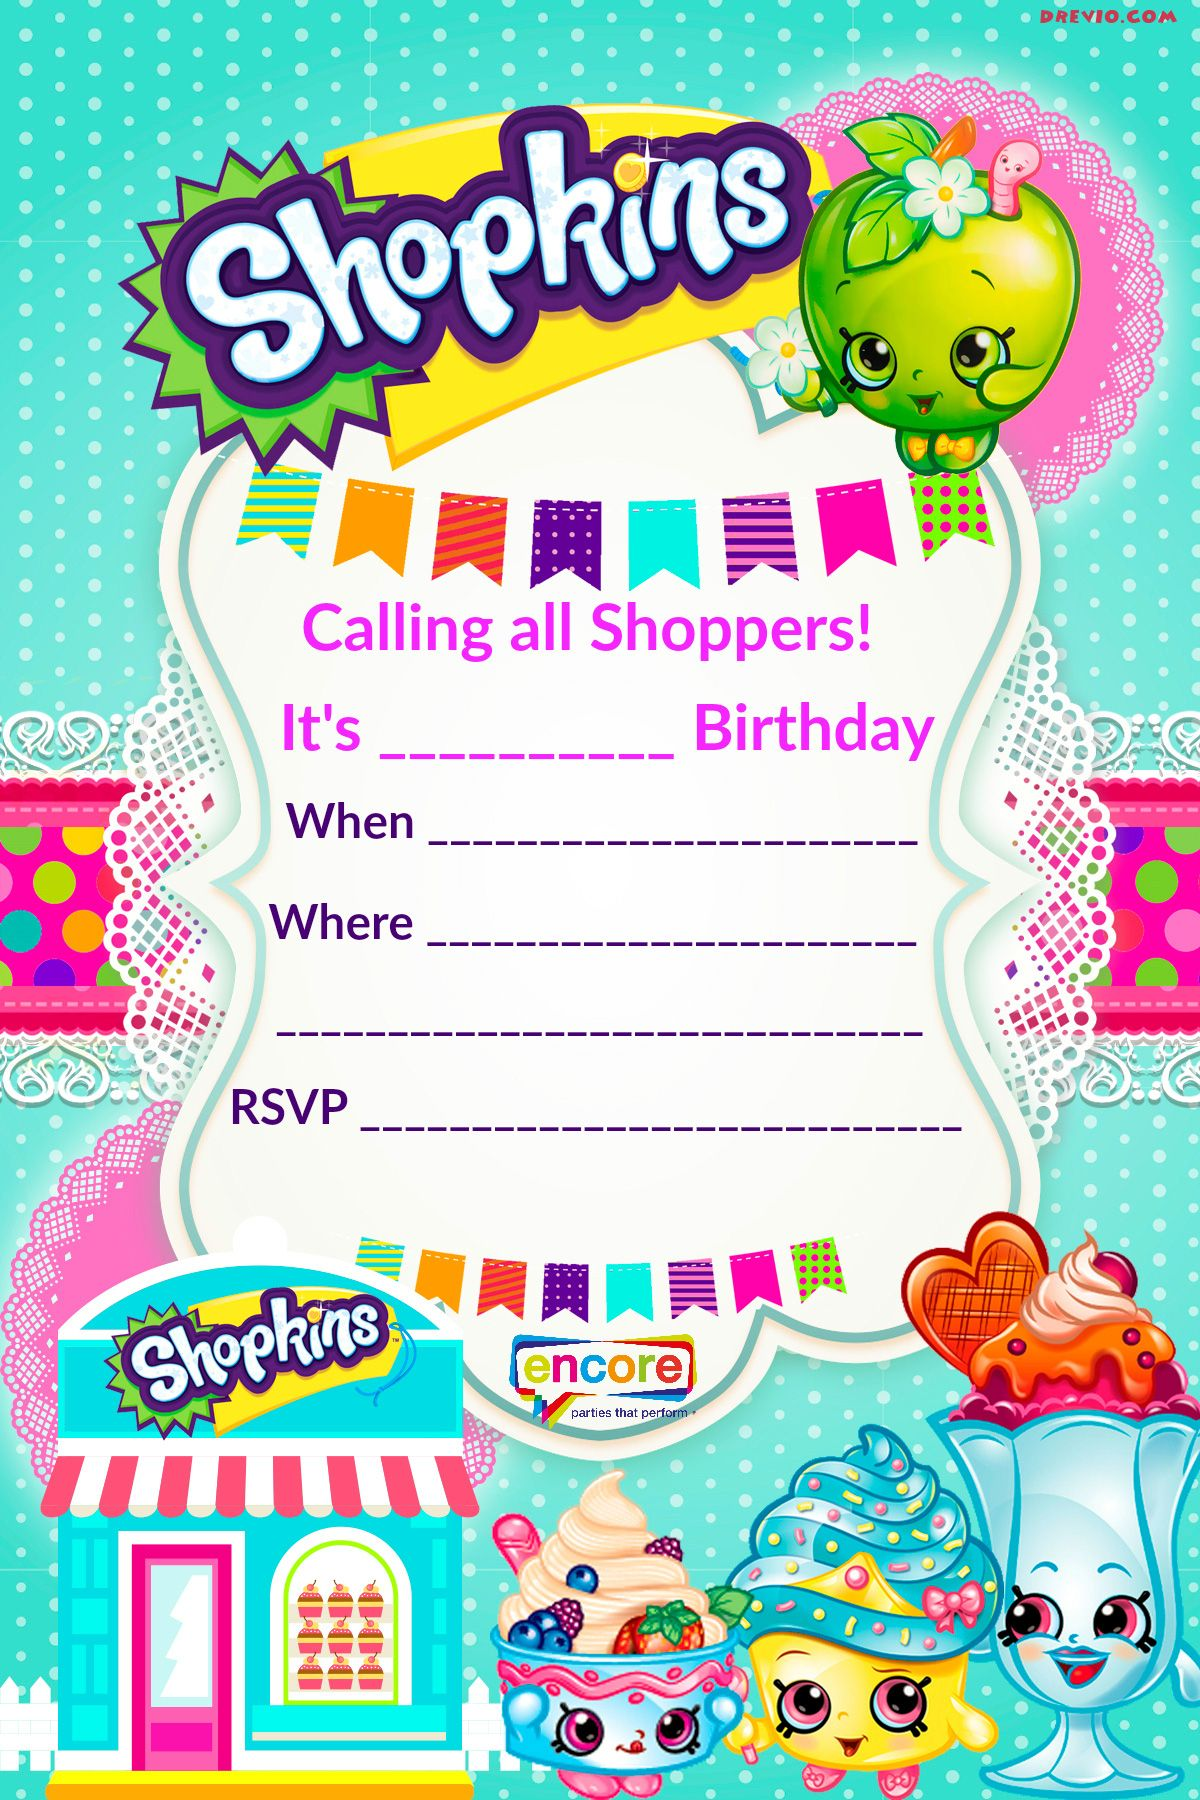 photo relating to Shopkins Printable Invitations referred to as Up to date Absolutely free Printable Shopkins Birthday Invitation